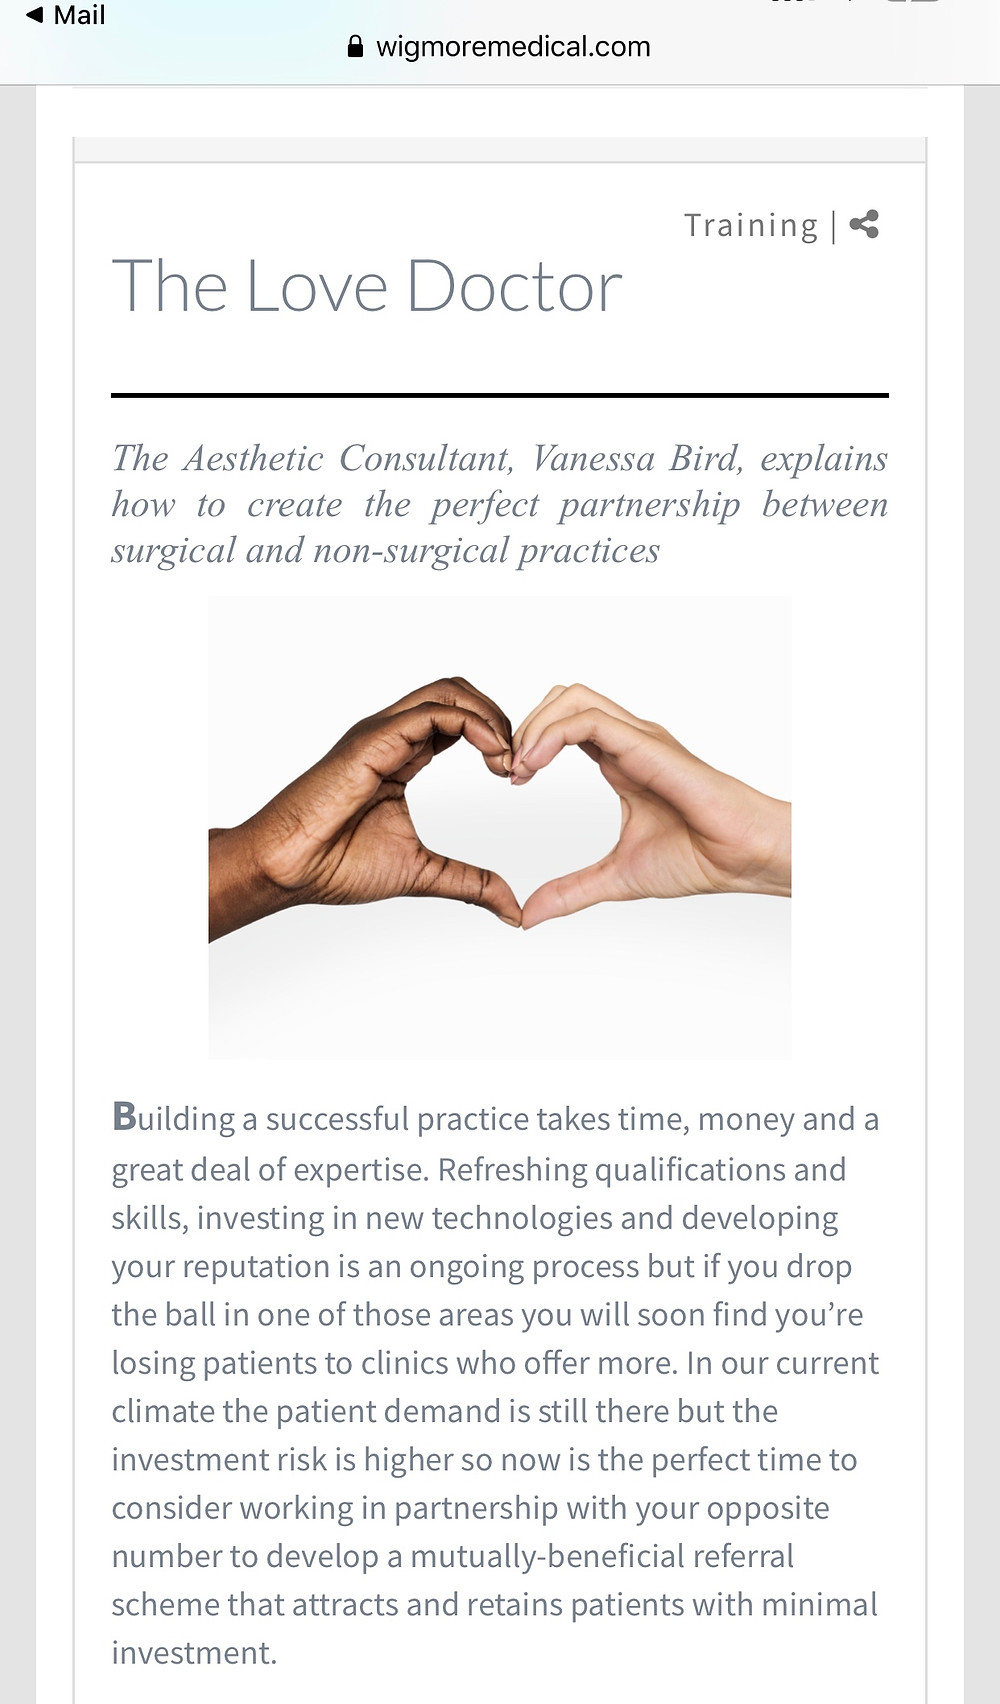 Why working with you opposite number in surgical and non-surgical aesthetics can build your business.